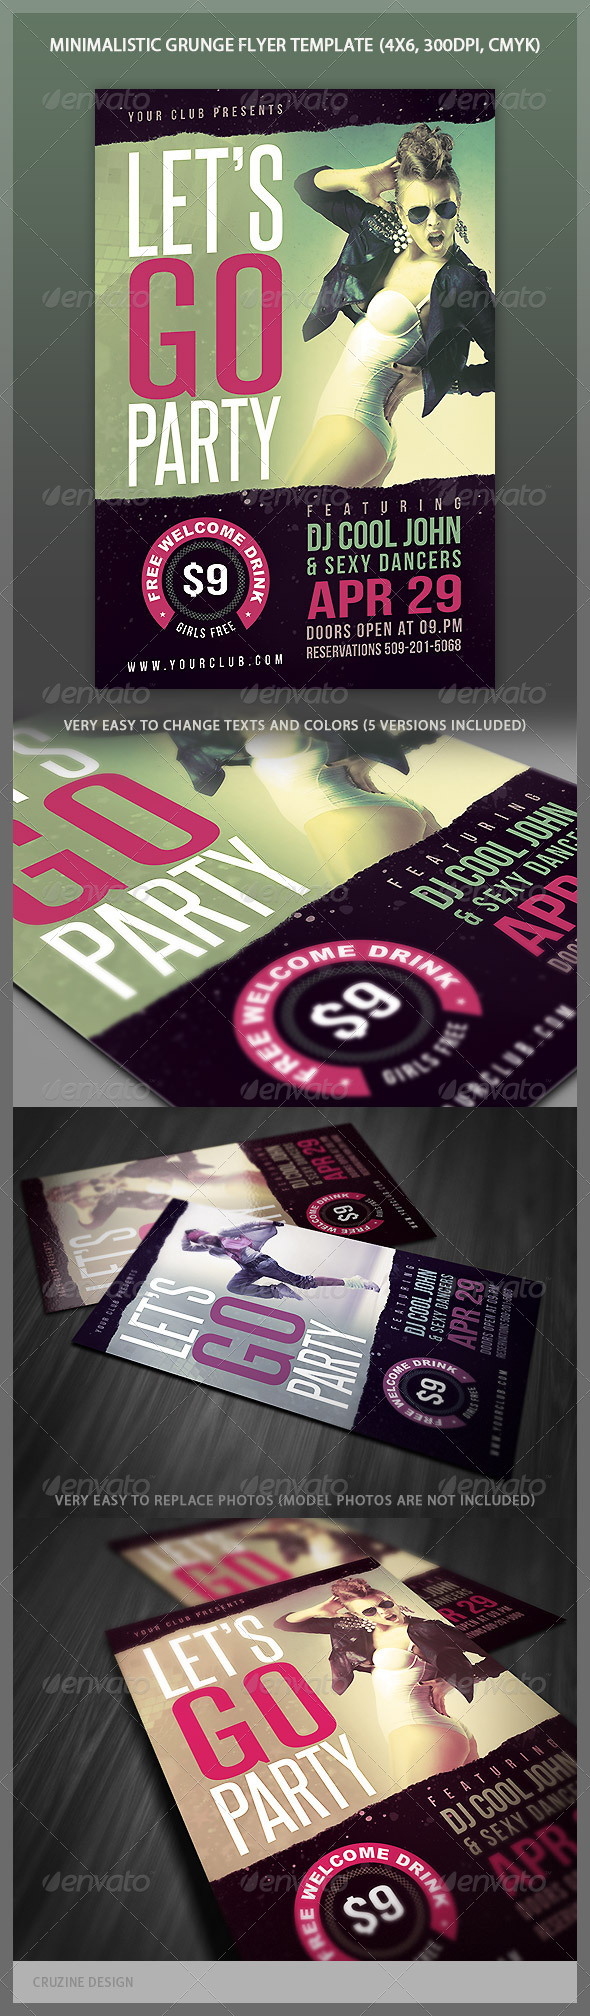 Minimalistic Grunge Party Flyer - Clubs & Parties Events